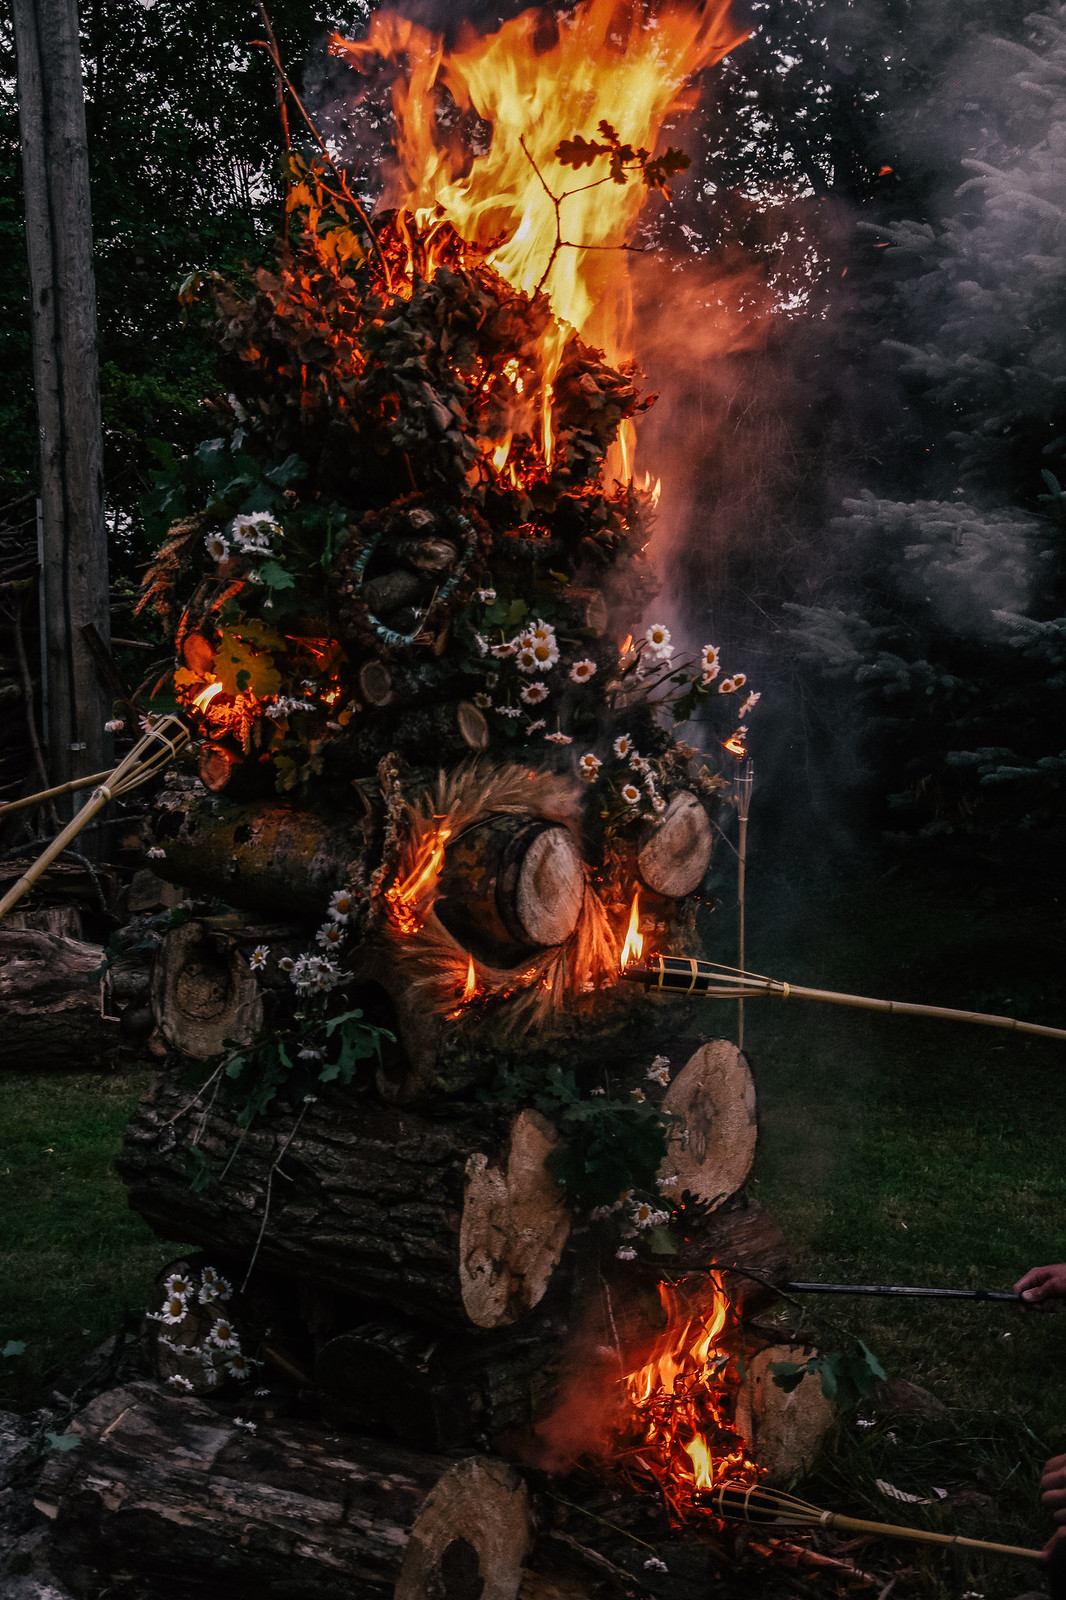 Midsummer celebration traditions in Latvia